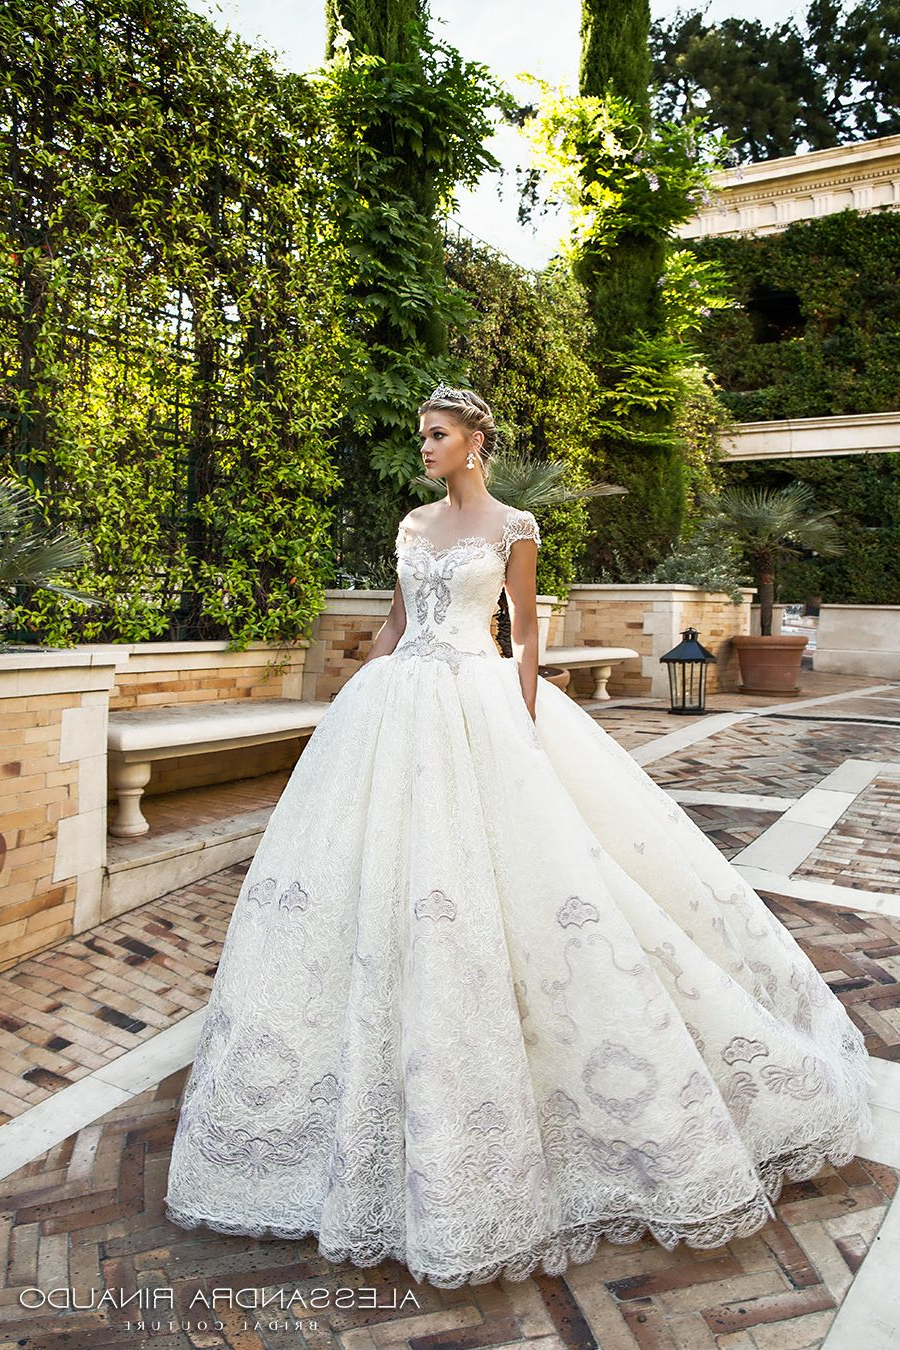 Newest Sleek And Big Princess Ball Gown Updos For Brides Pertaining To Alessandra Rinaudo 2017 Wedding Dresses — Gorgeous Italian Bridal (View 10 of 20)